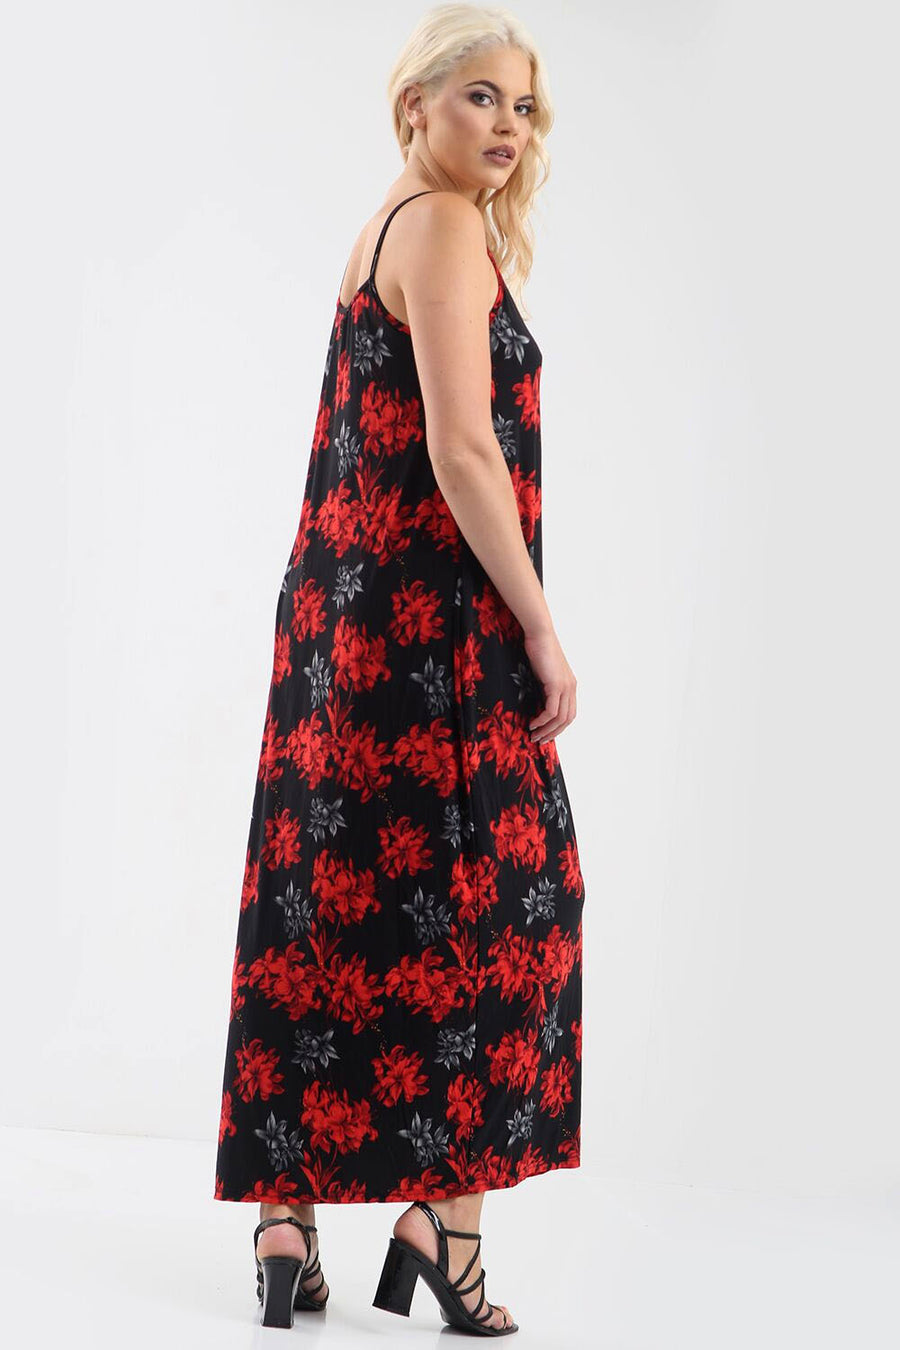 Red Floral Print Loose Fit Strappy Maxi Dress - bejealous-com